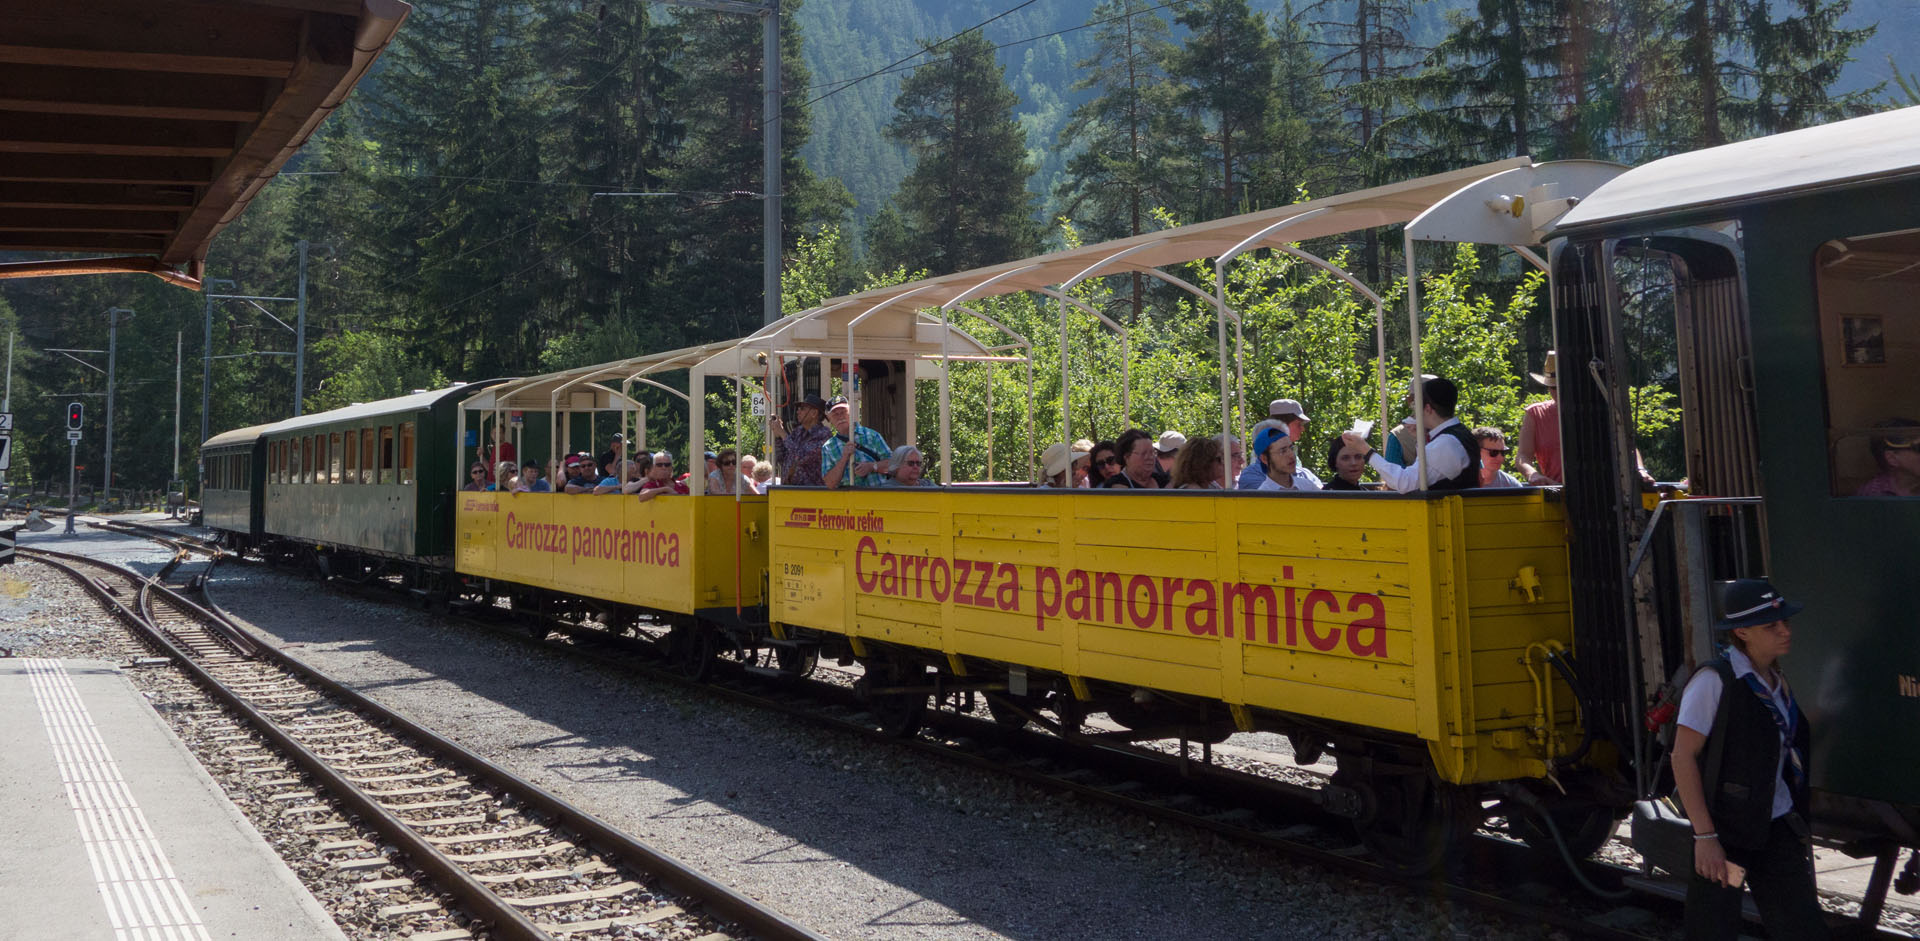 Carrozza panoramica